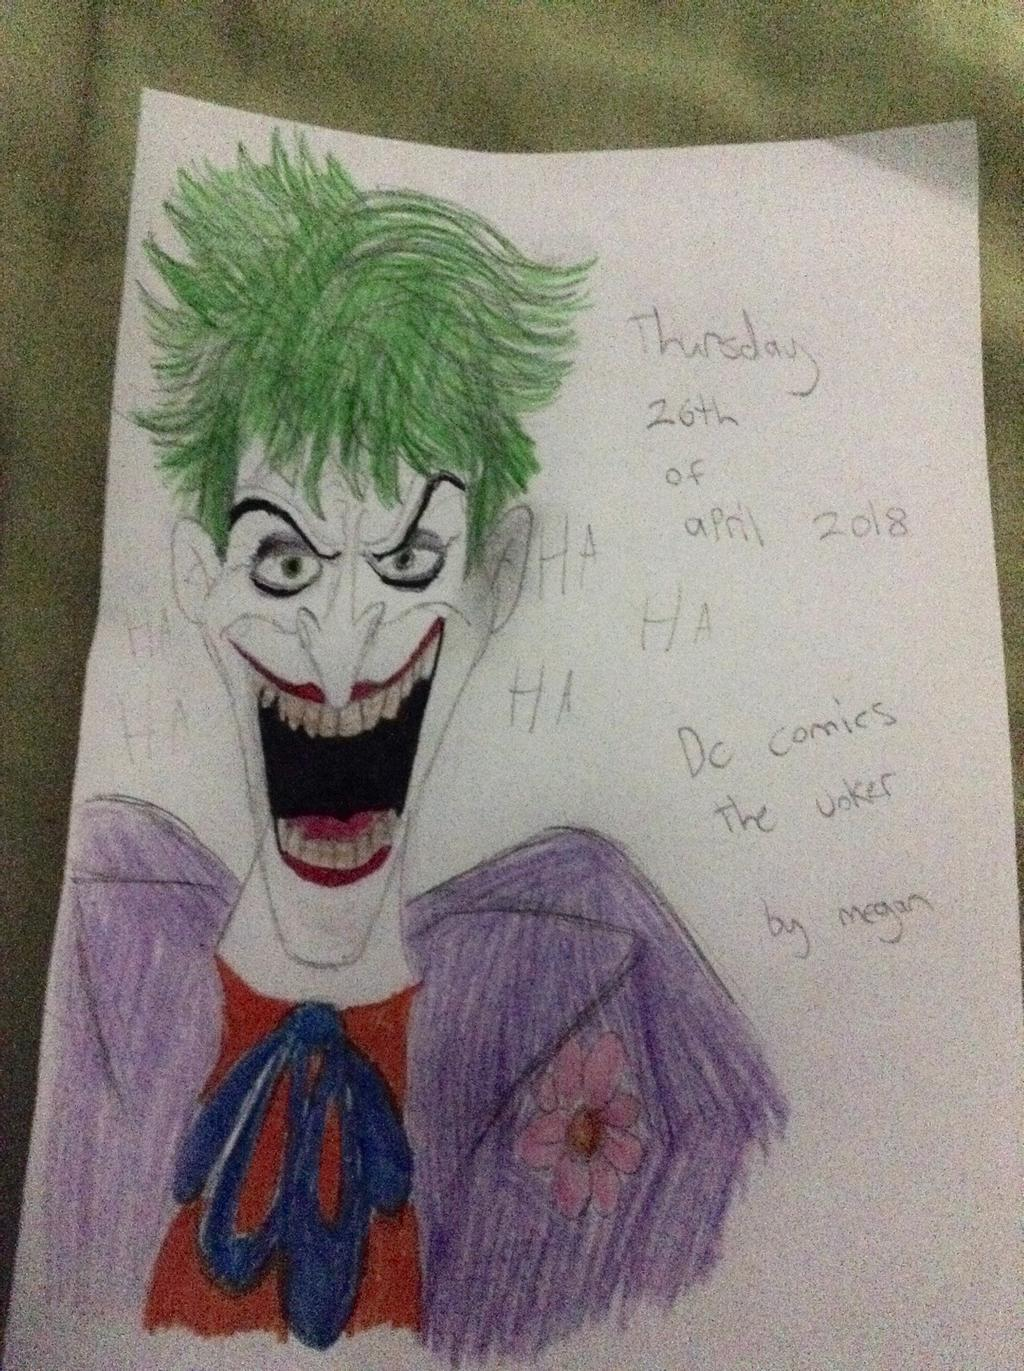 the_joker_by_jokerfan79_dcbo0e3-fullview.jpg